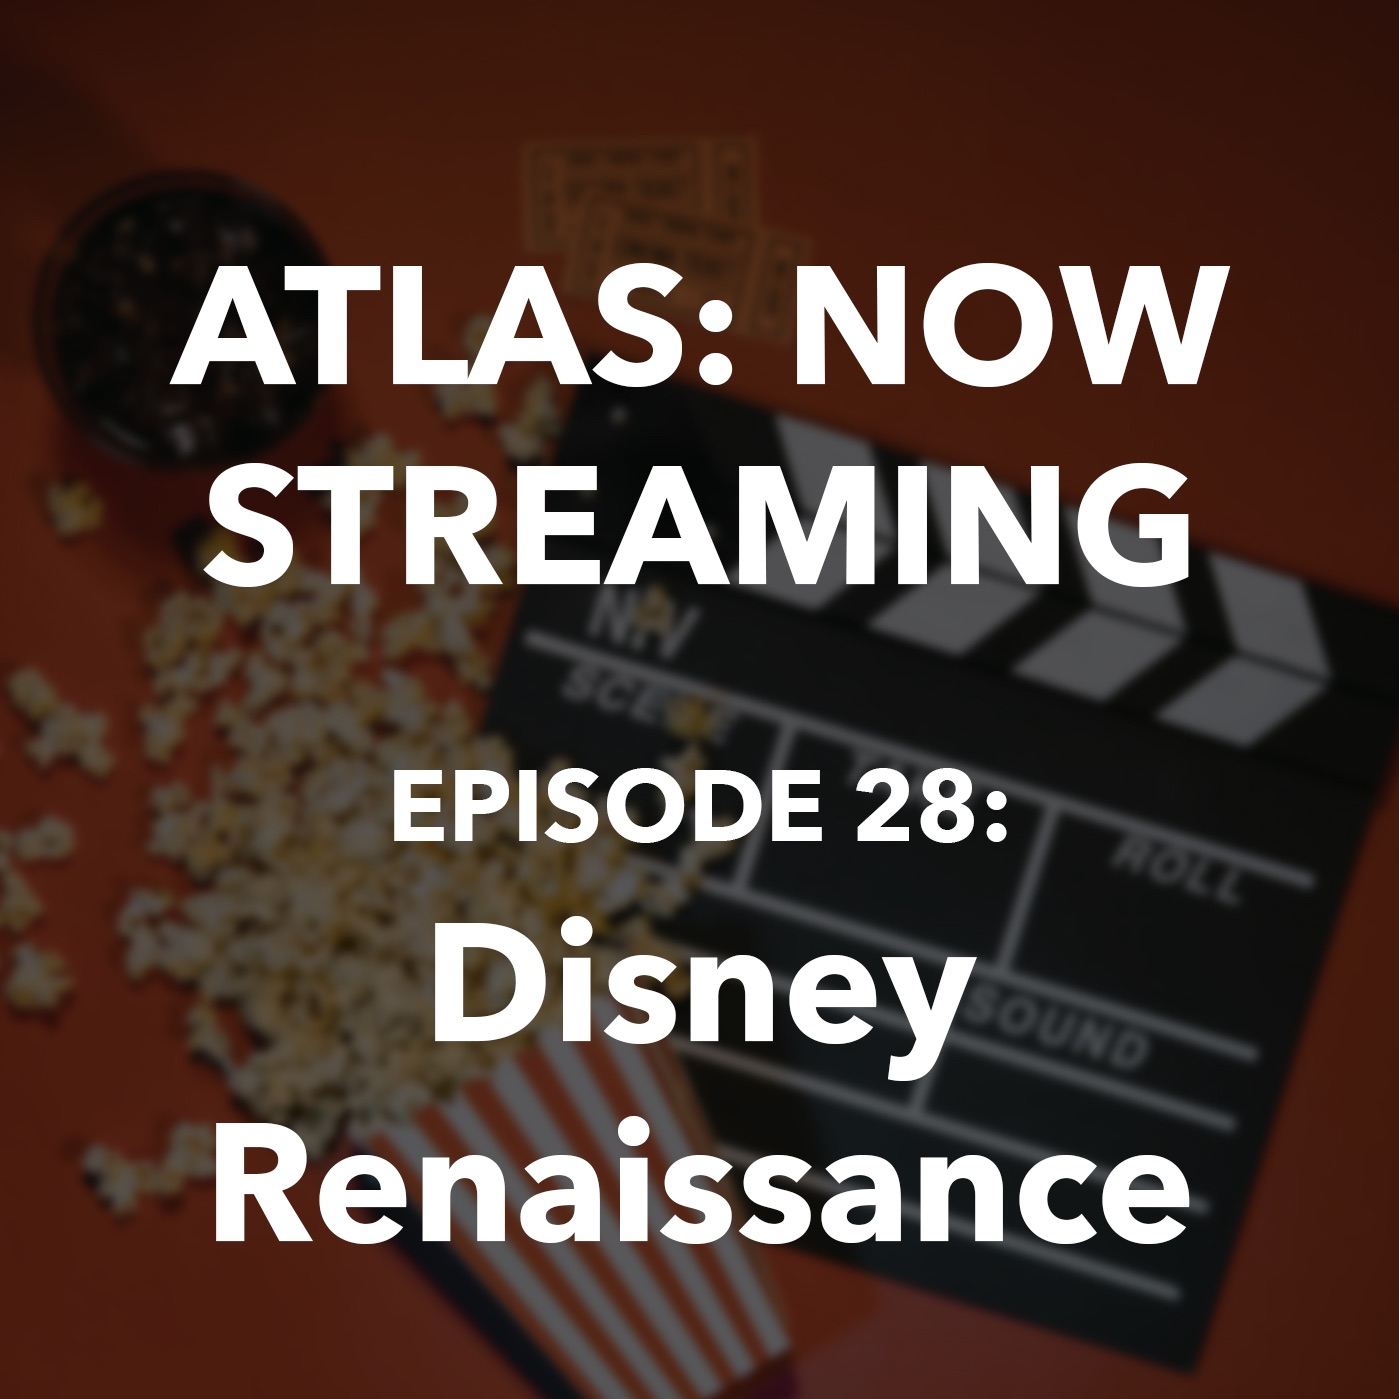 Atlas: Now Streaming Episode 28 - The Disney Renaissance